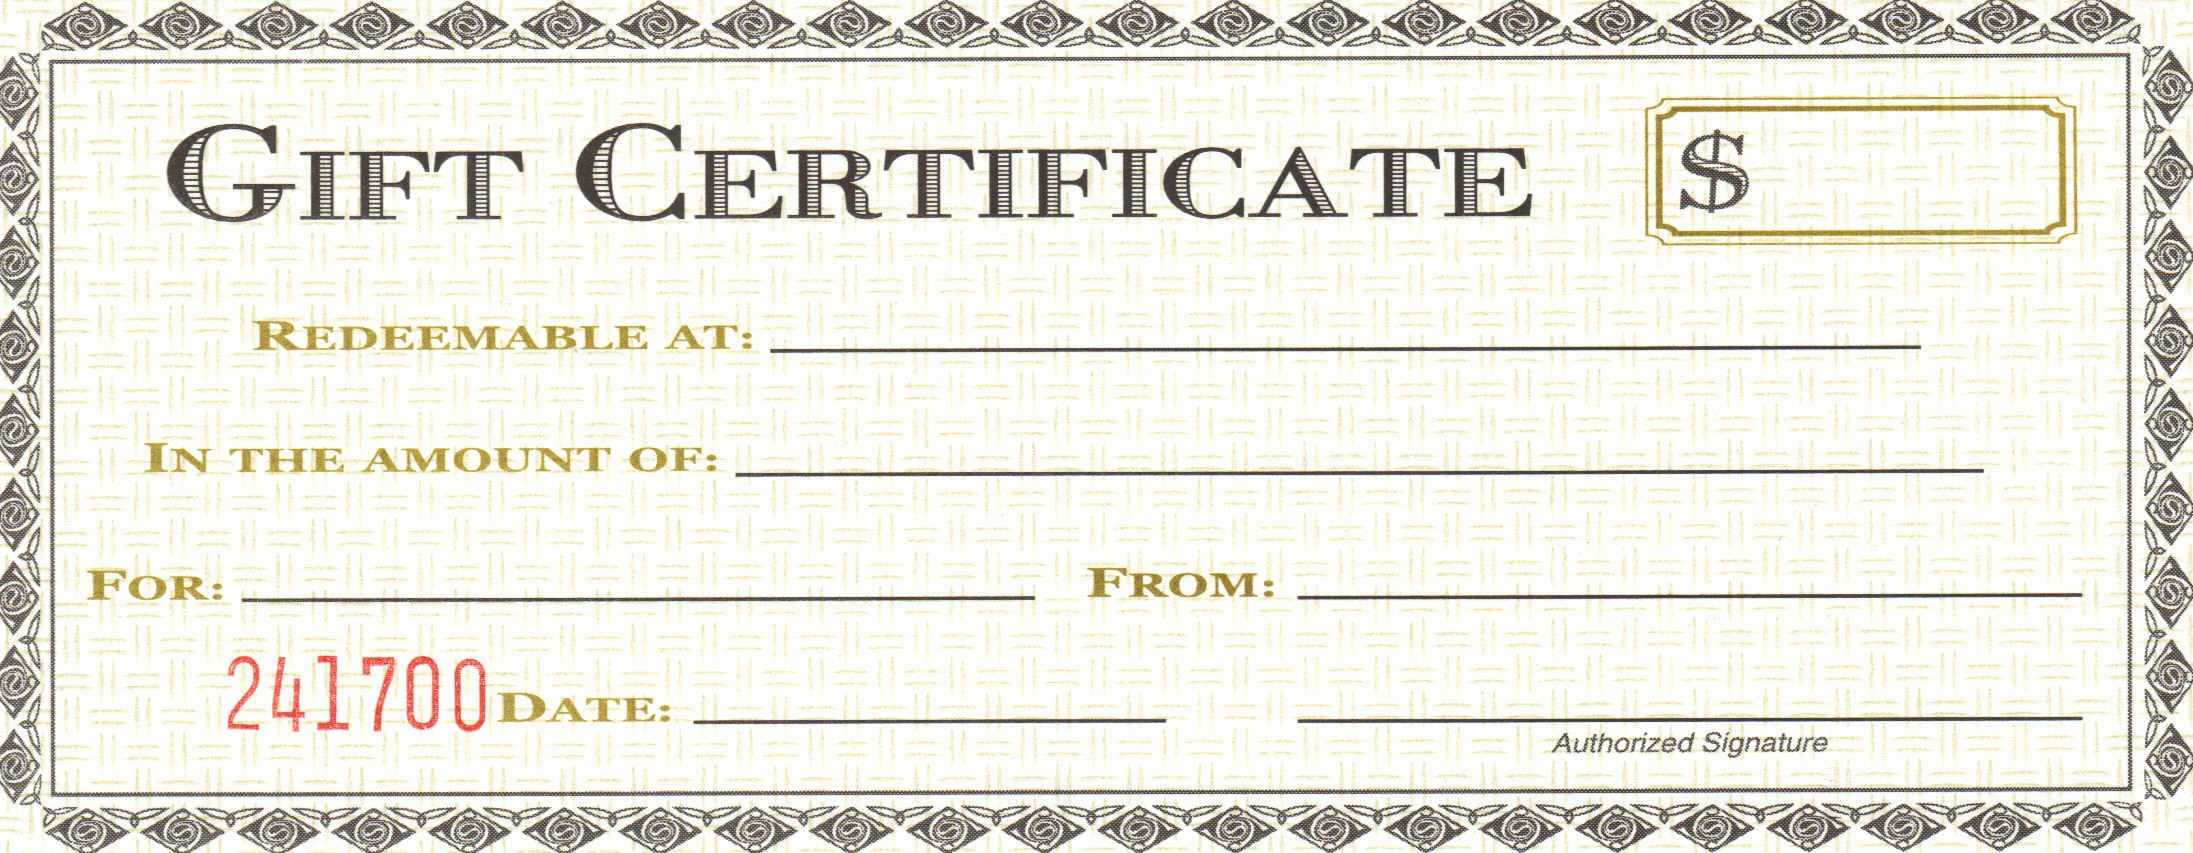 Gift Certificate Samples Free Templates Best Of 18 Gift Certificate Templates Excel Pdf formats